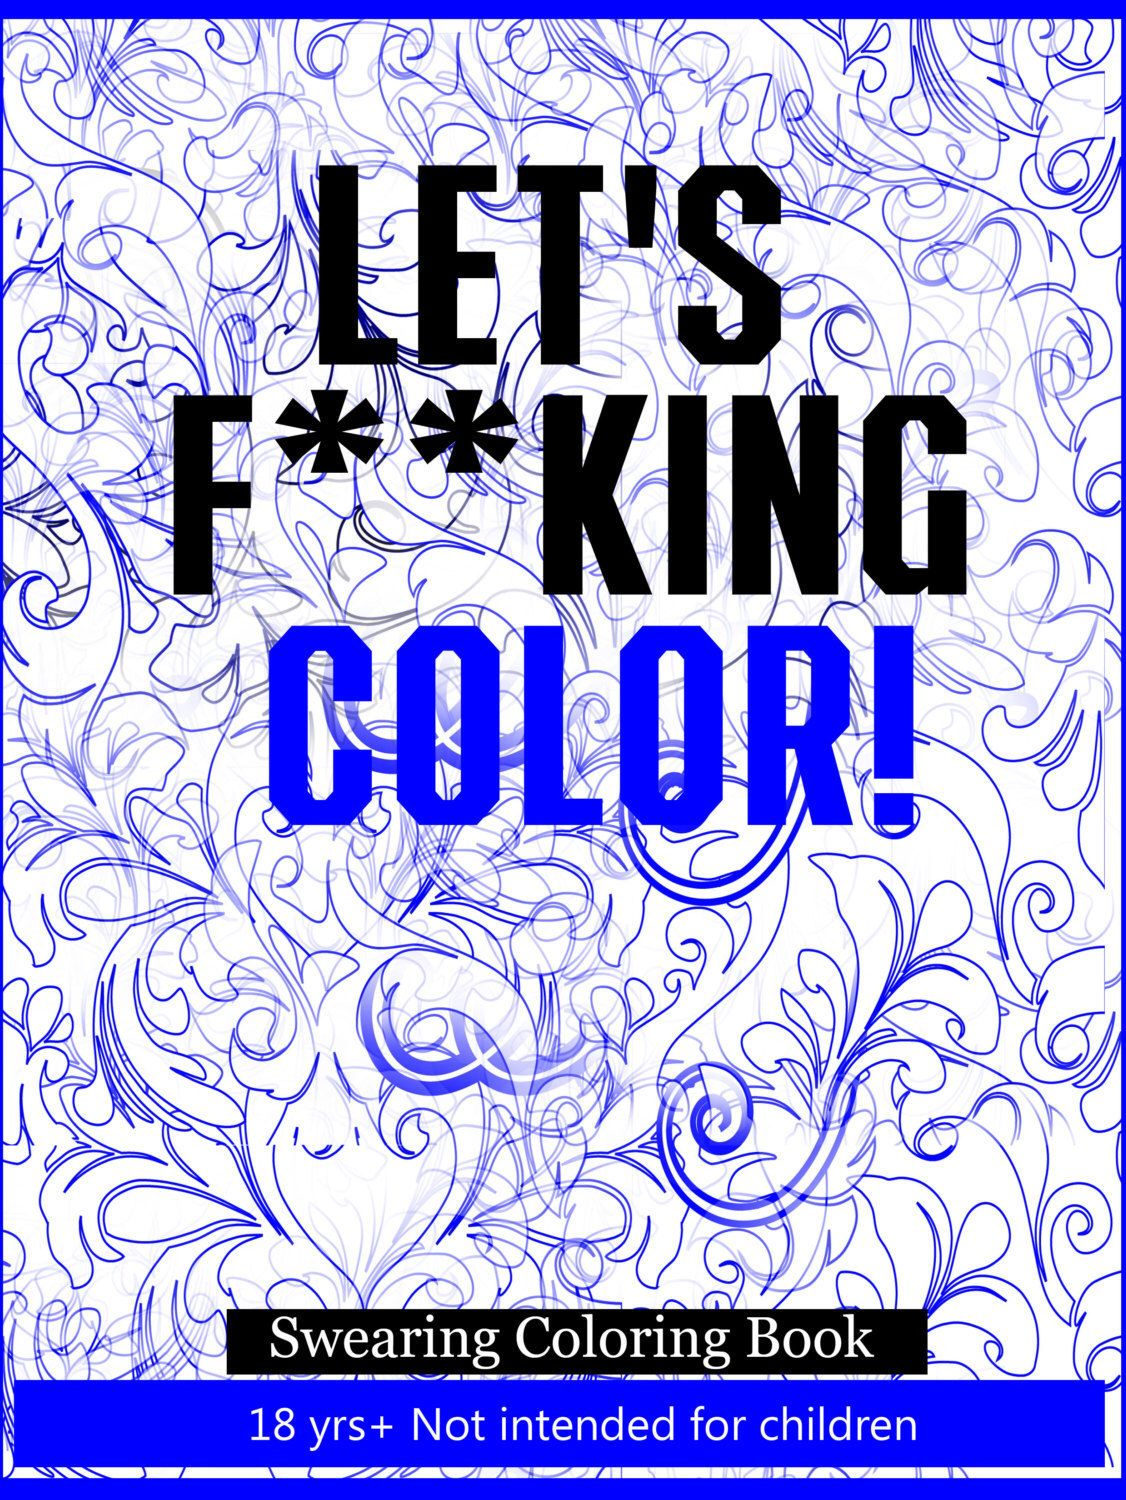 Sw swear word coloring pages etsy - Let S Fucking Color Swearing Coloring Book Download Image Sw Swear Word Coloring Pages Etsy